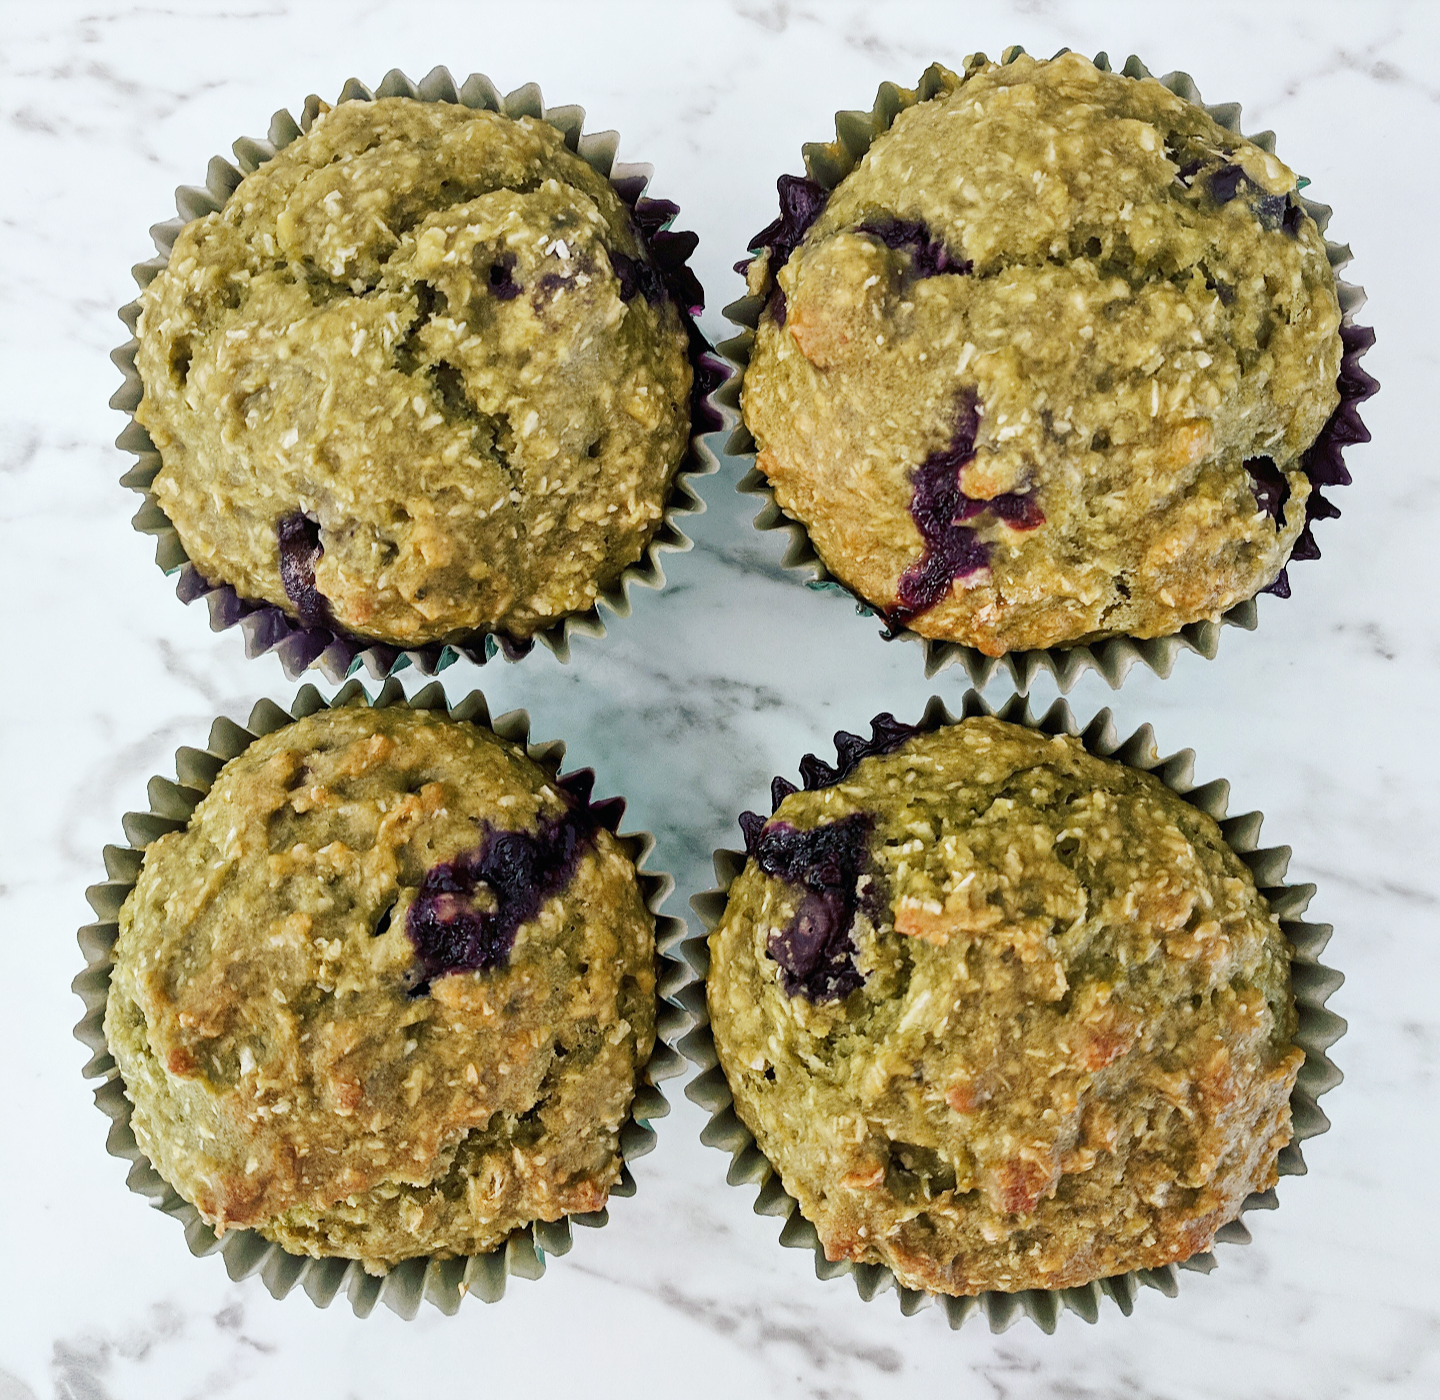 Matcha and Lemon Muffins